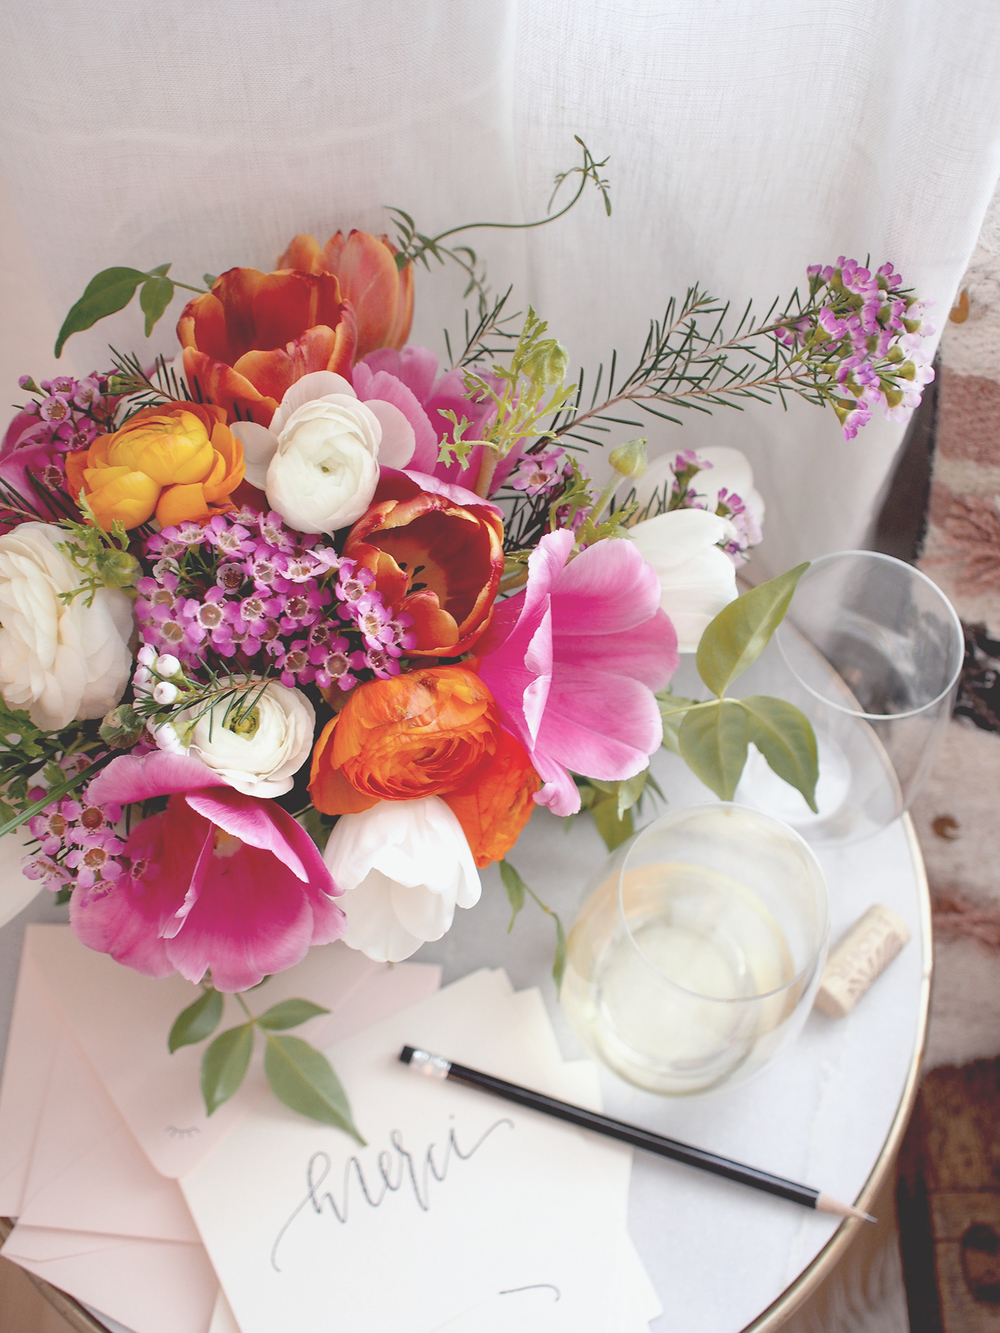 Tips for creating flower arrangments | A Fabulous Fete